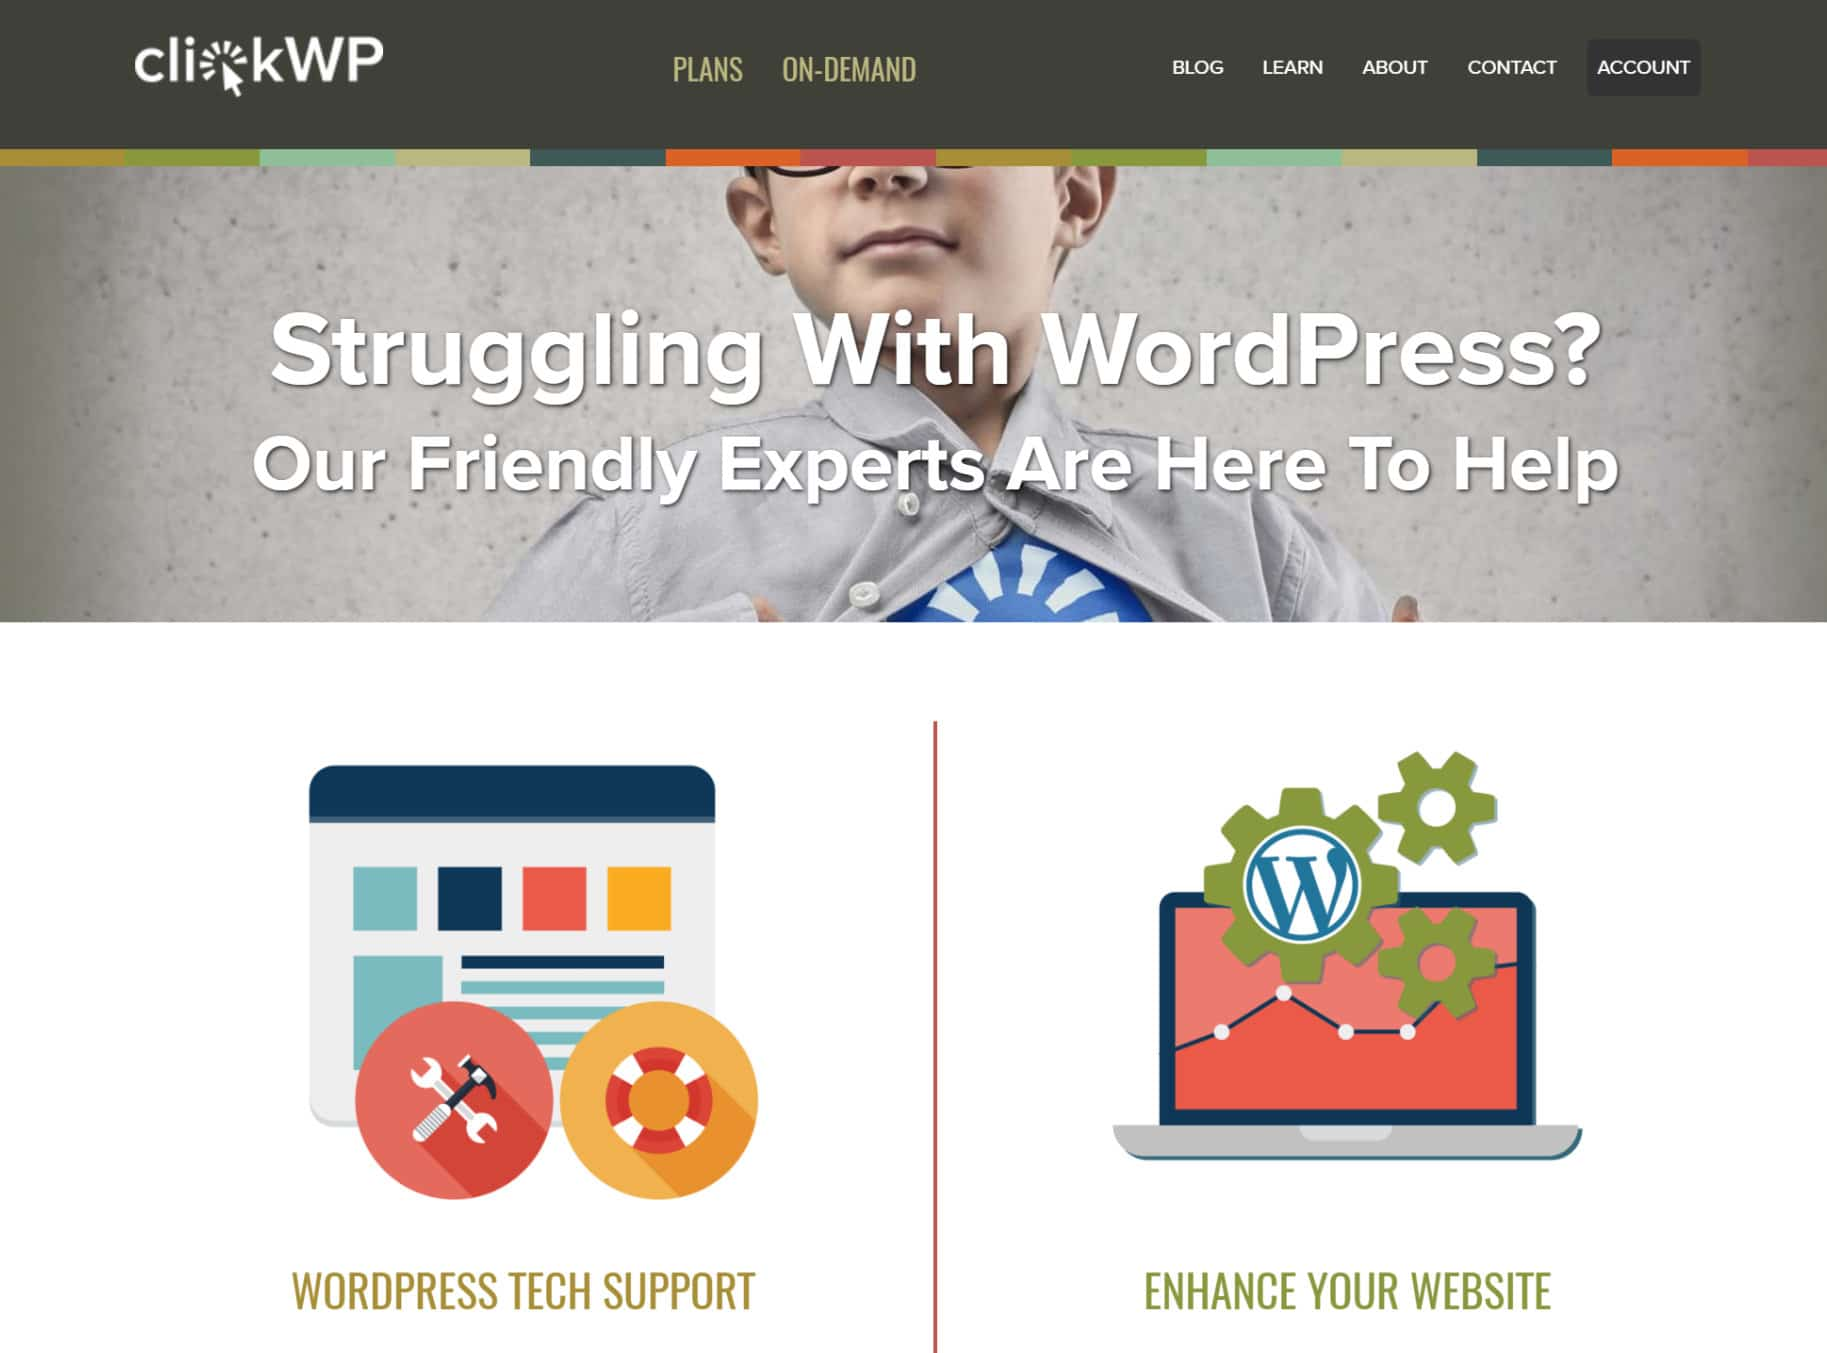 clickwp WordPress development